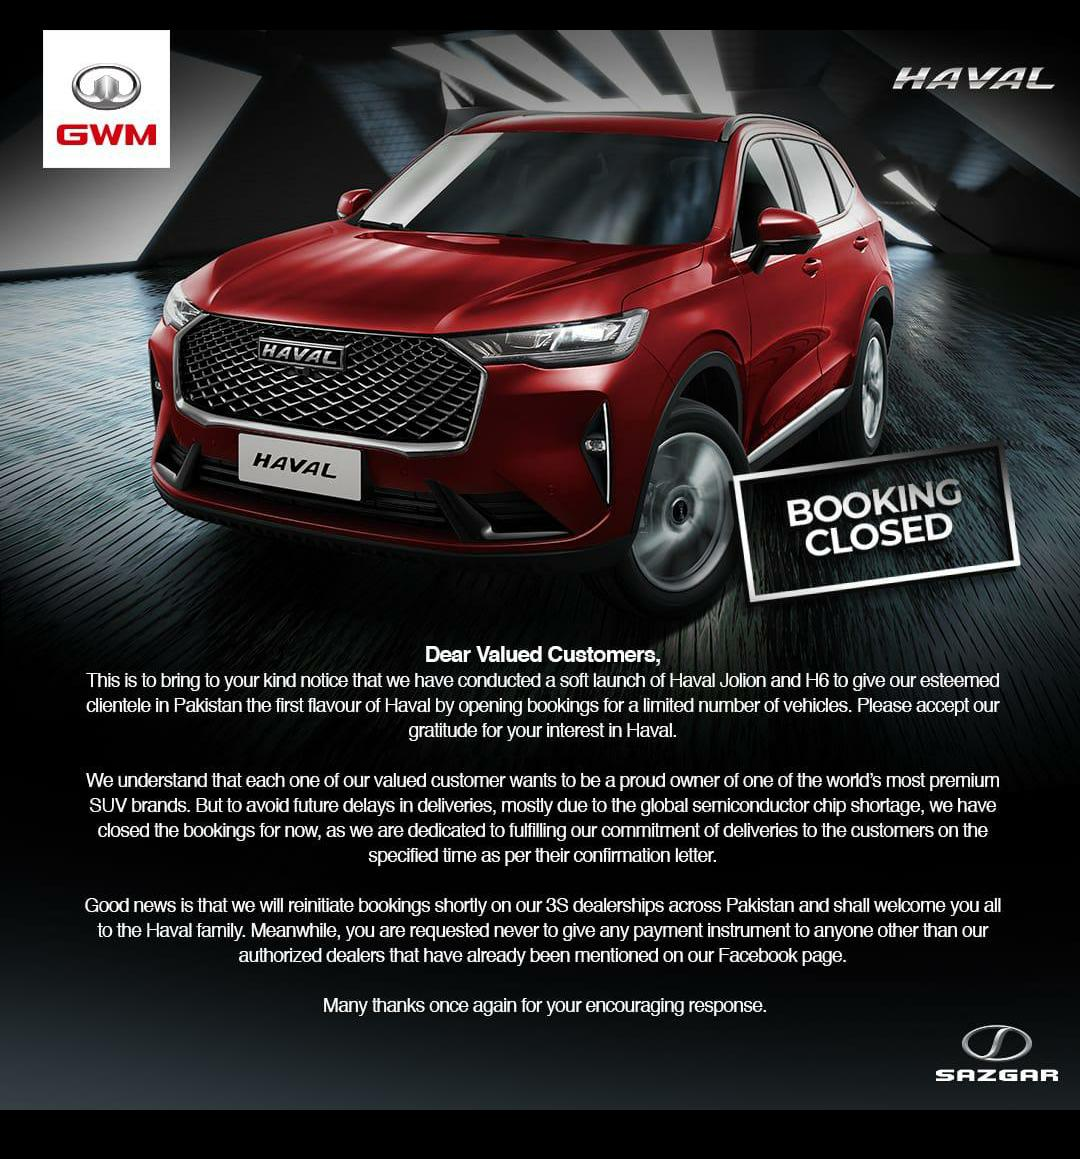 Haval Pakistan Closes Bookings for Vehicles Due to Global Chip Shortage